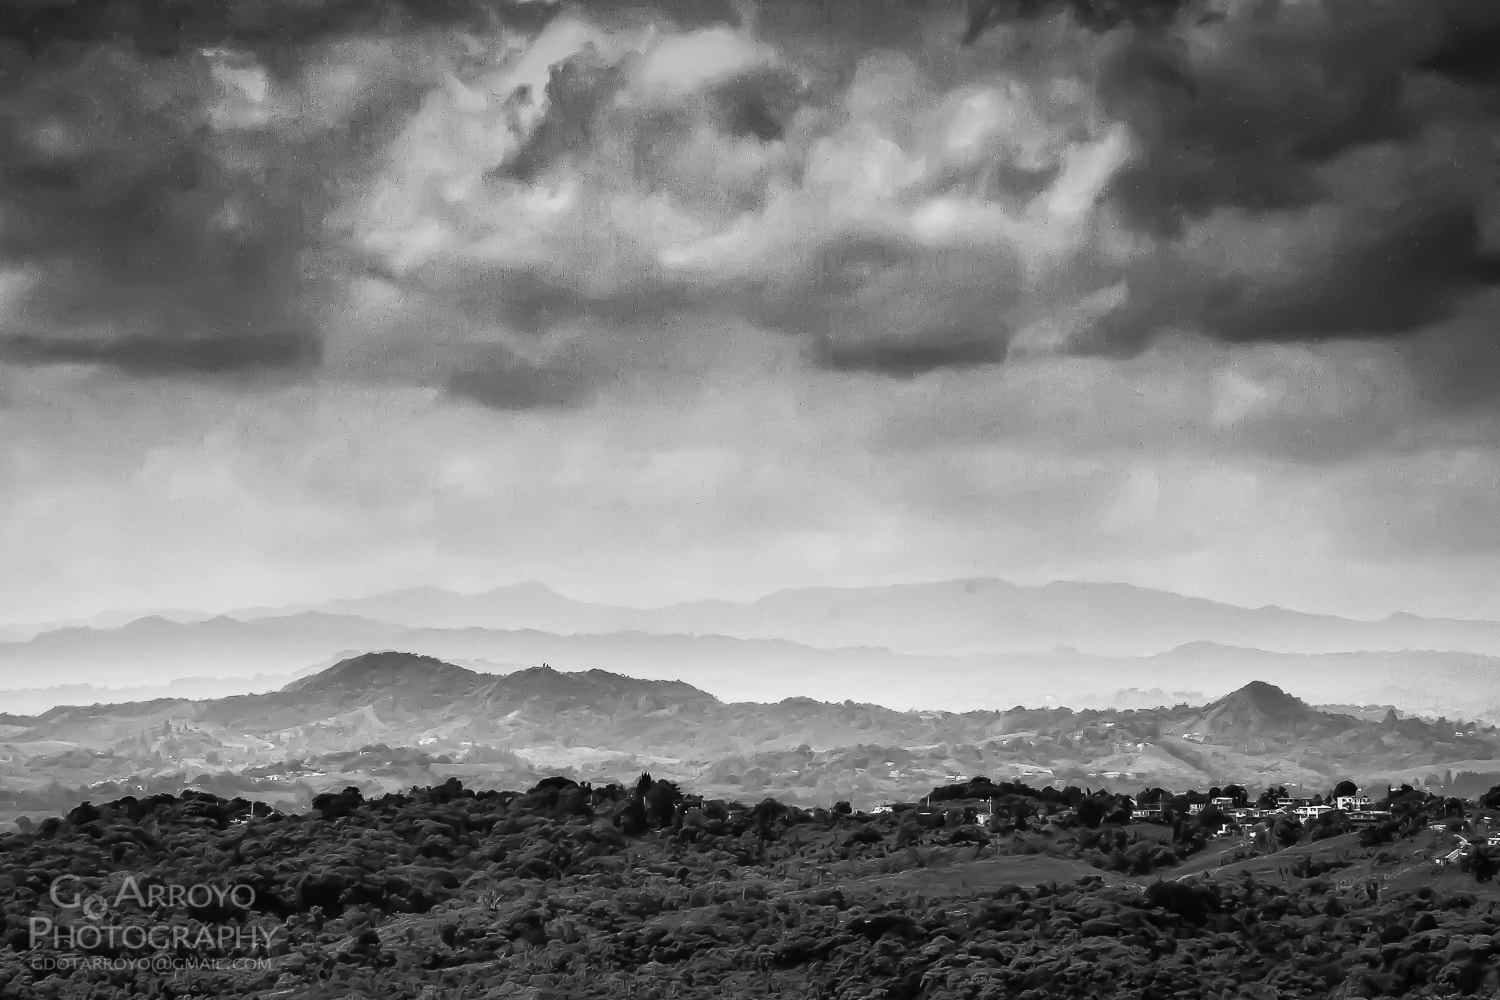 Photograph The mountains of Puerto Rico by Giovanni Arroyo on 500px